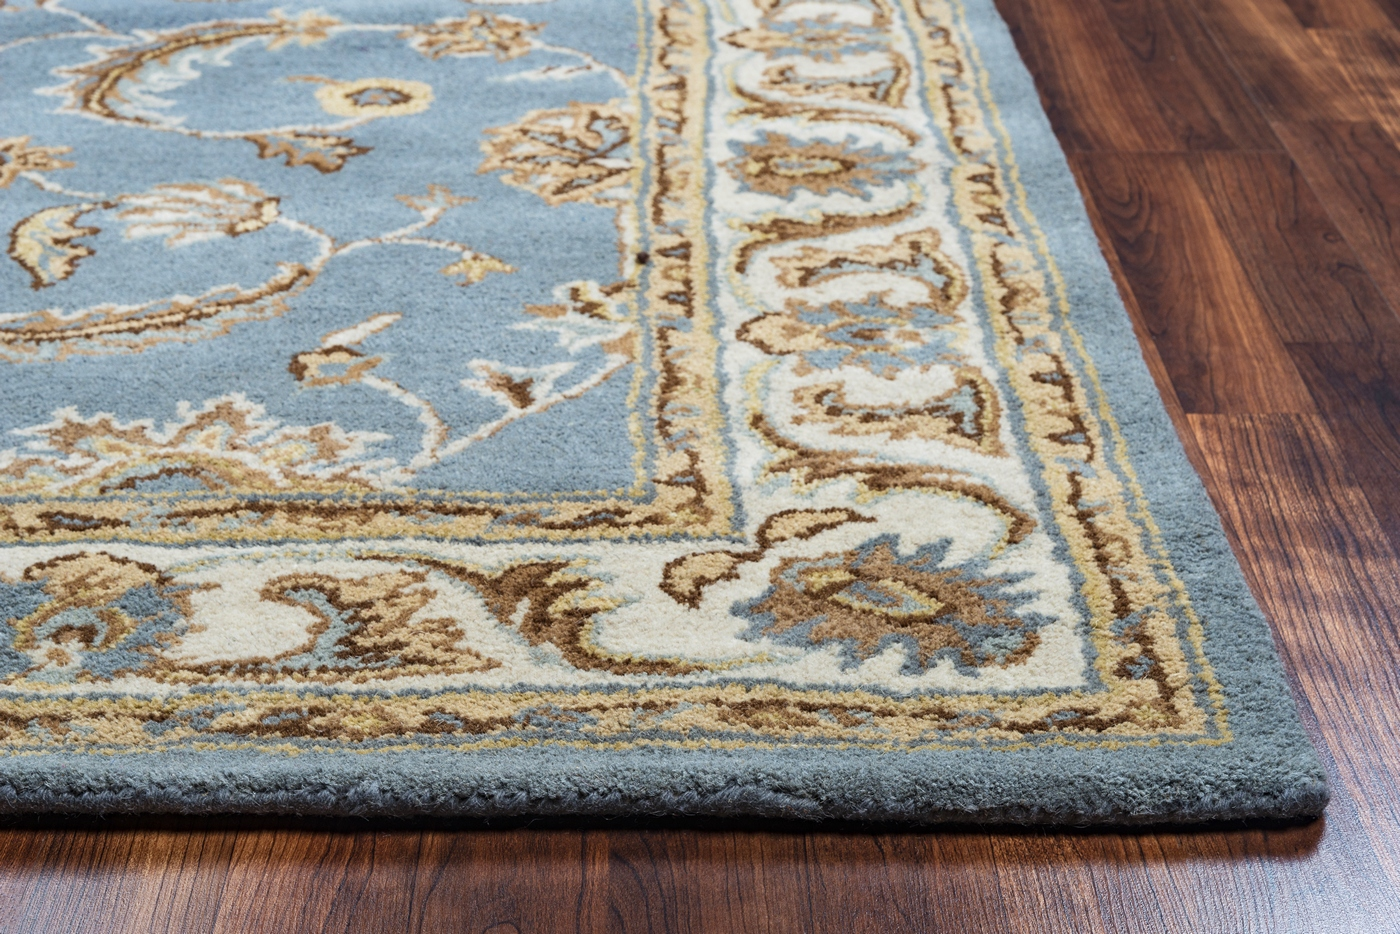 Volare Floral Trellis Pattern Wool Area Rug In Blue Tan